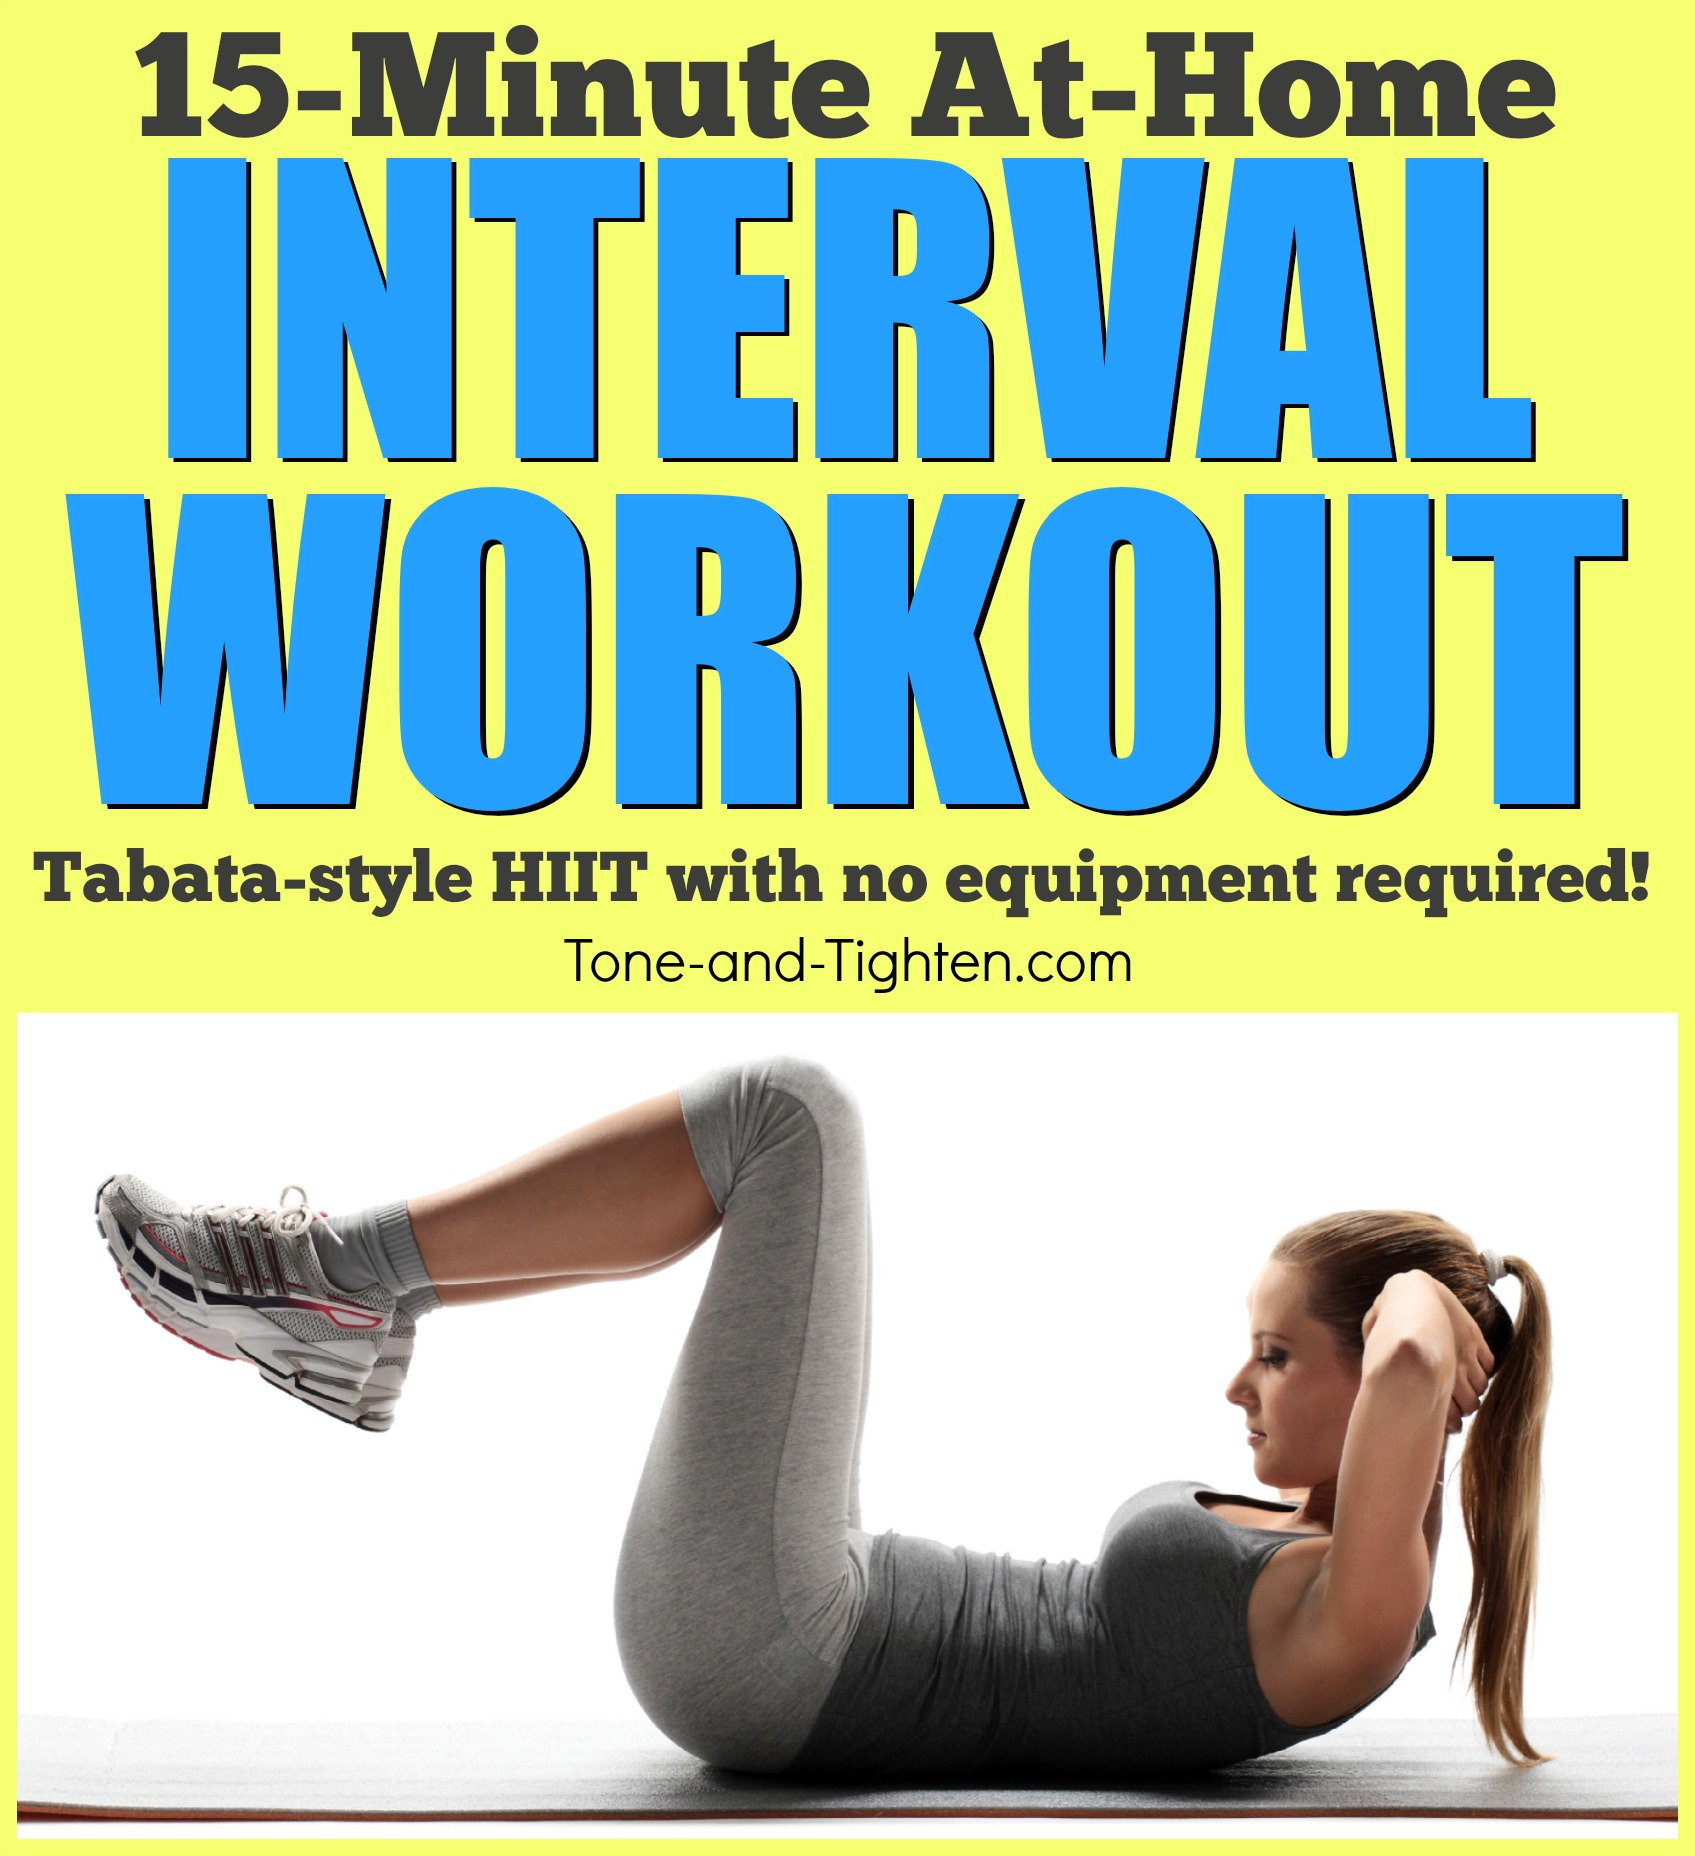 Quick at home tabata interval workout with no equipment